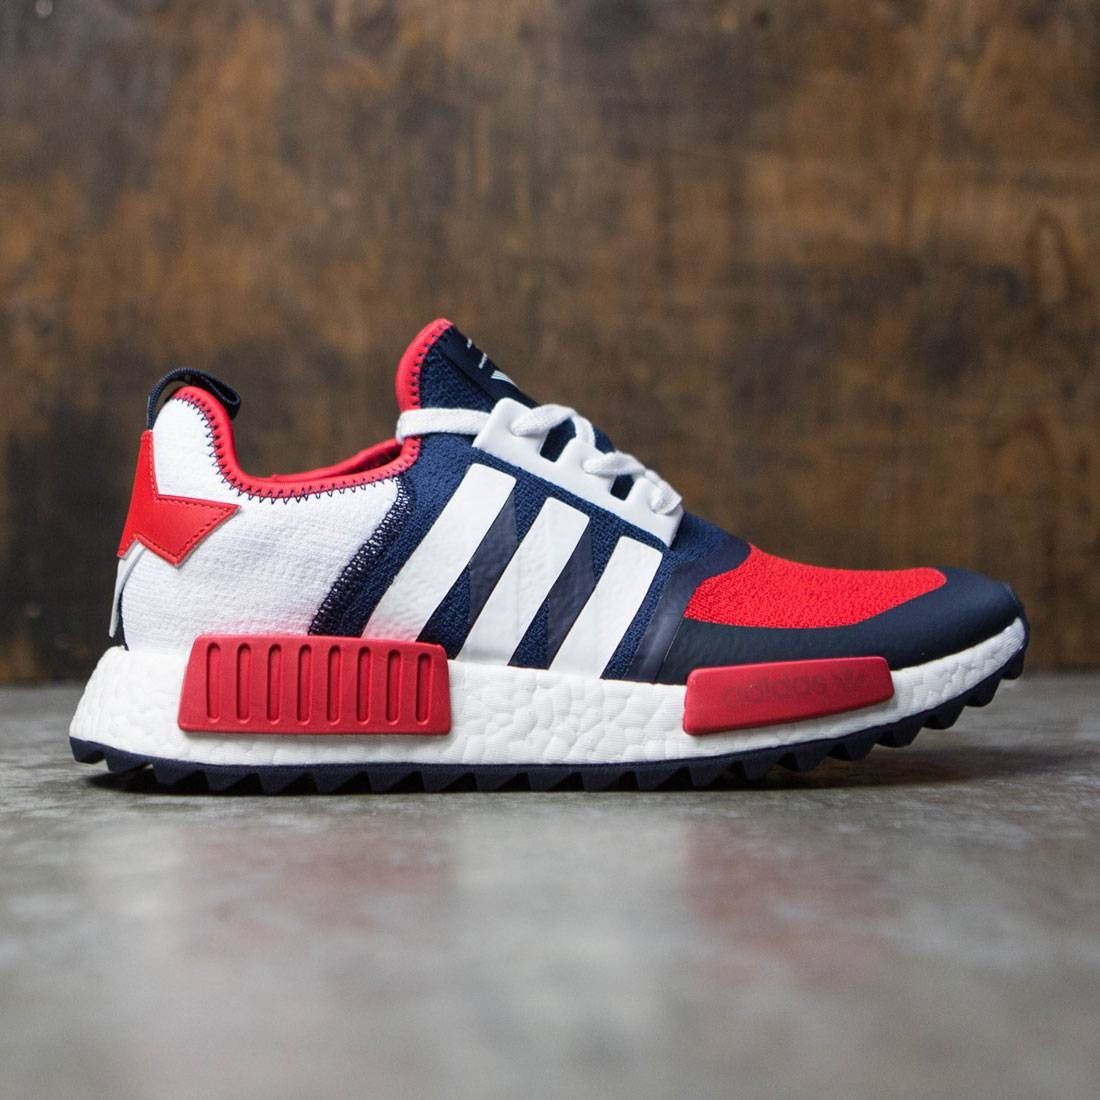 White Mountaineering X Adidas Nmd Trail Collegiate Navy